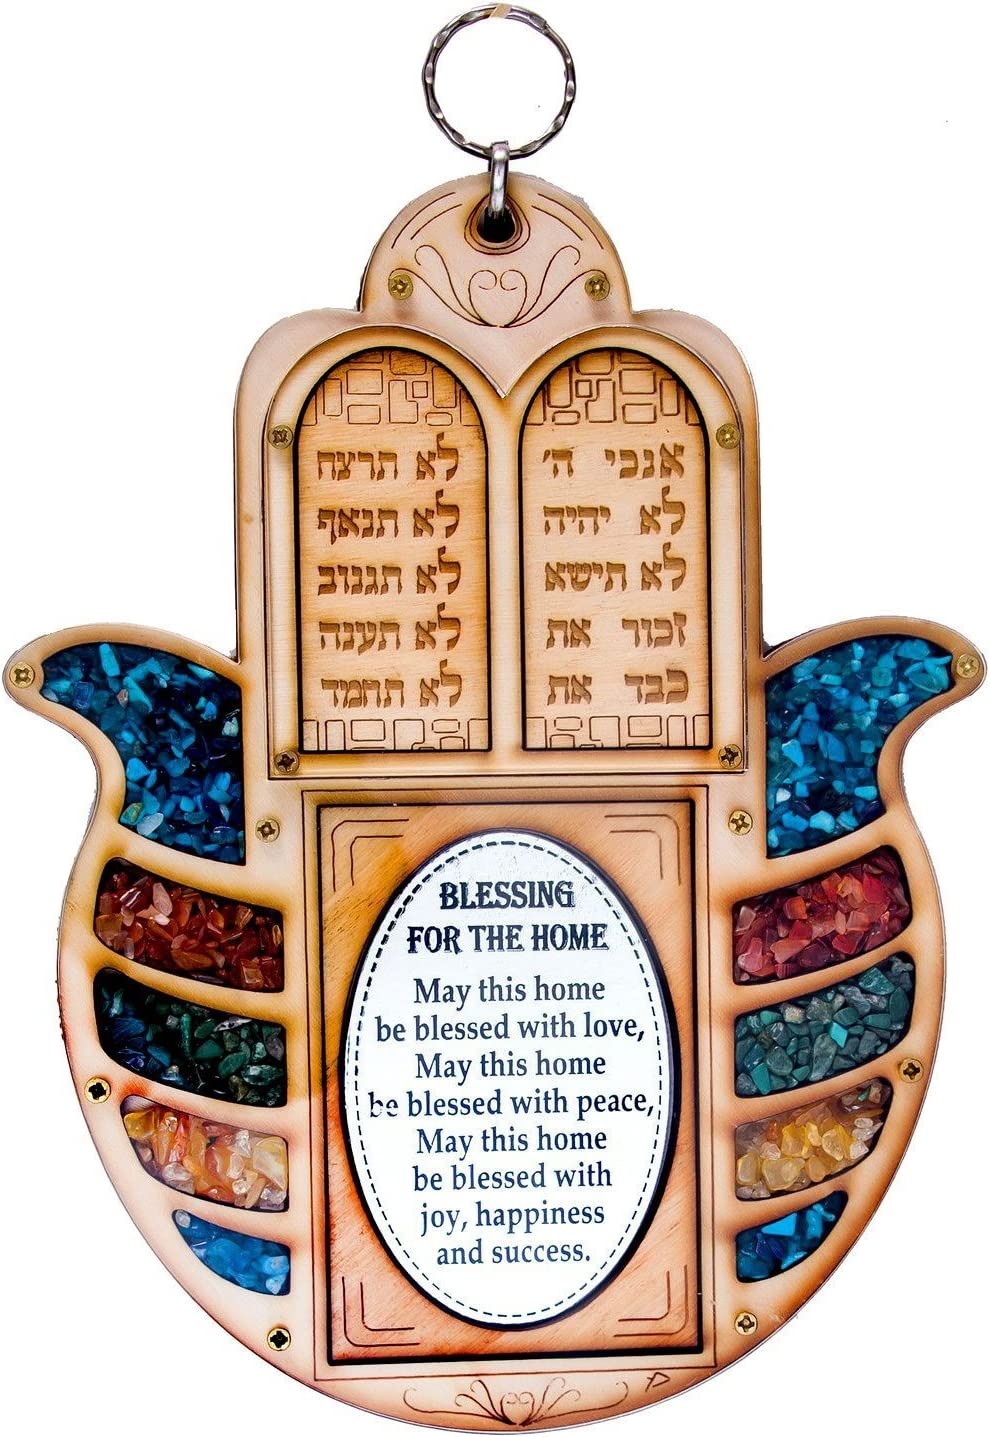 Anandashop-UK- The Ten Commandments Decalogue Wood Wall Hanging Judaica Hamsa Home Blessing With Semi Precious Stones